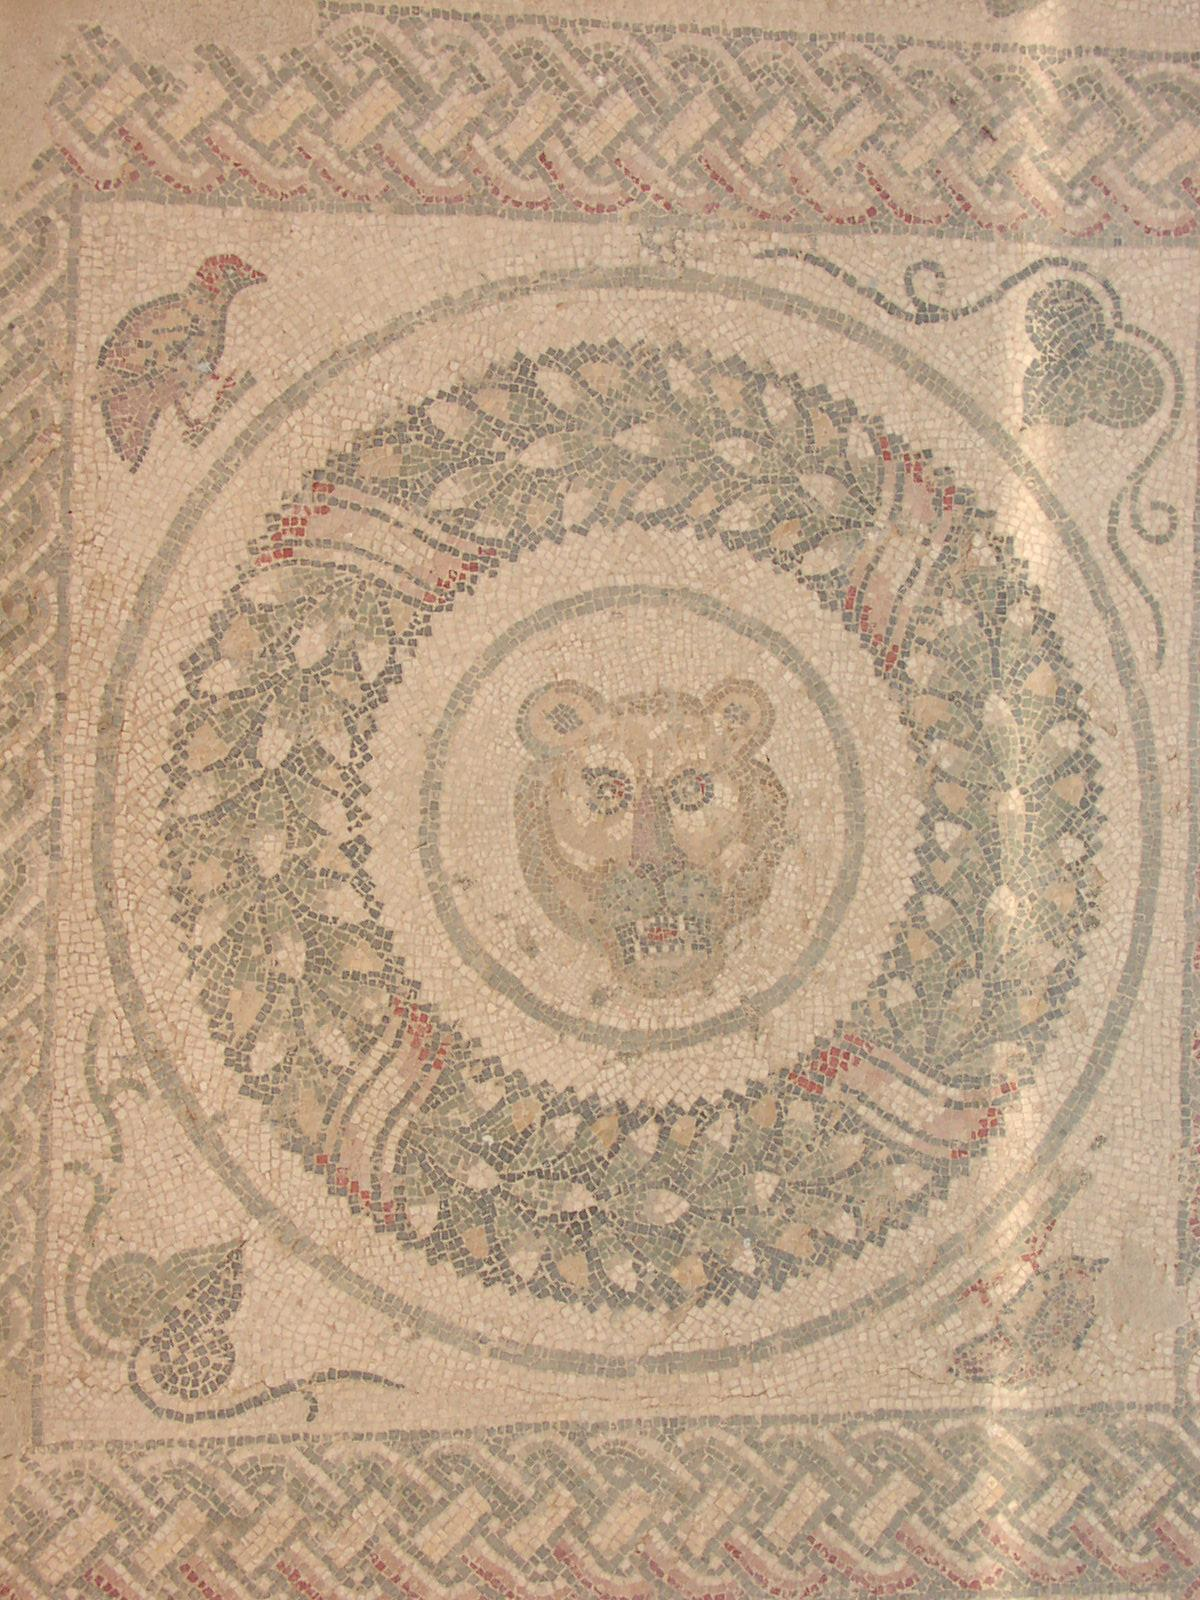 Villa Romana del Casale - Mosaic from the peristyle with leafs of ivy